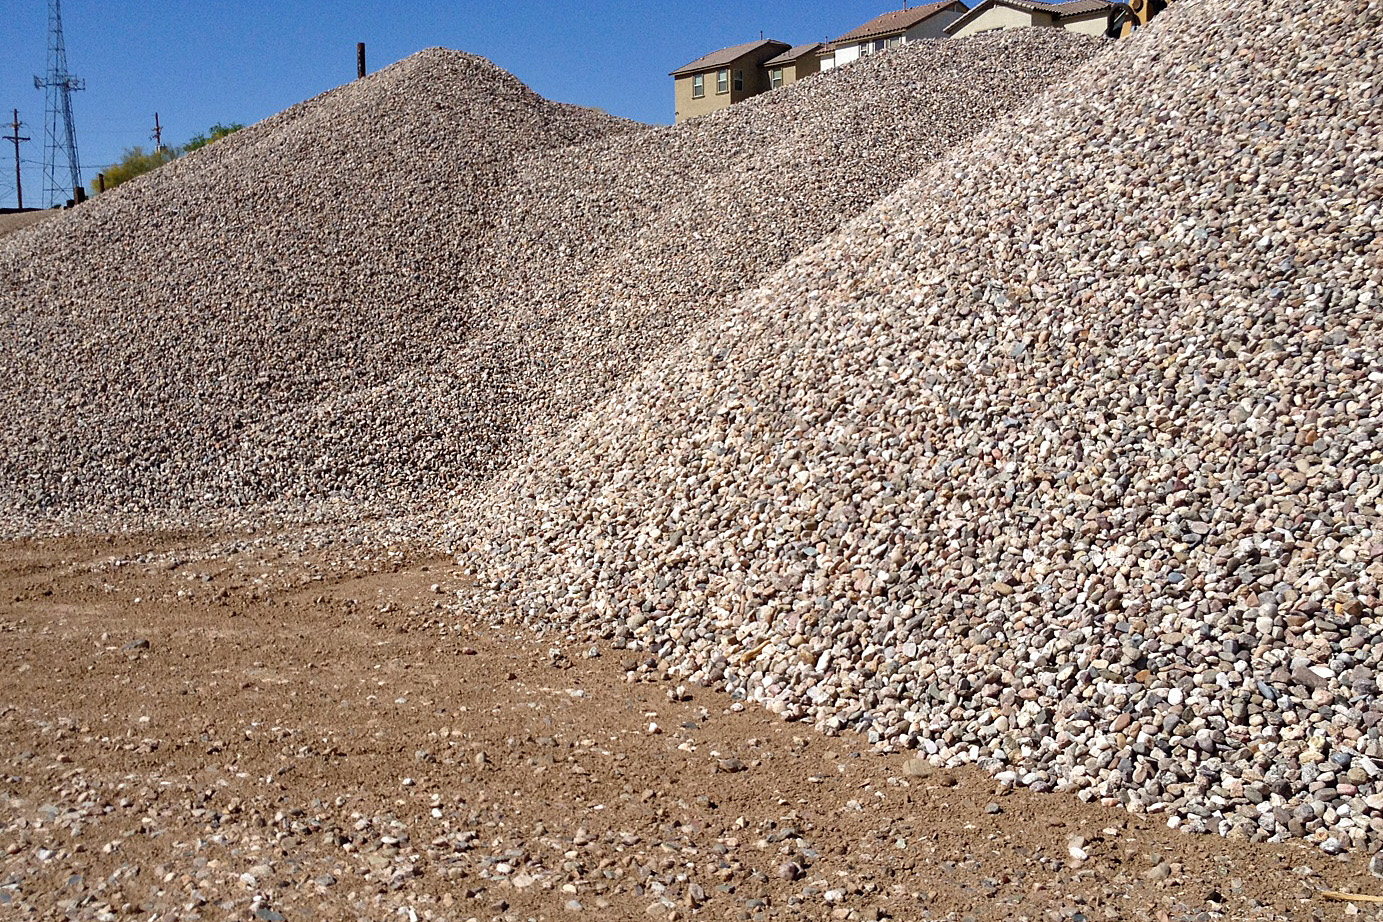 Crushed Rock Would Be Best For Building